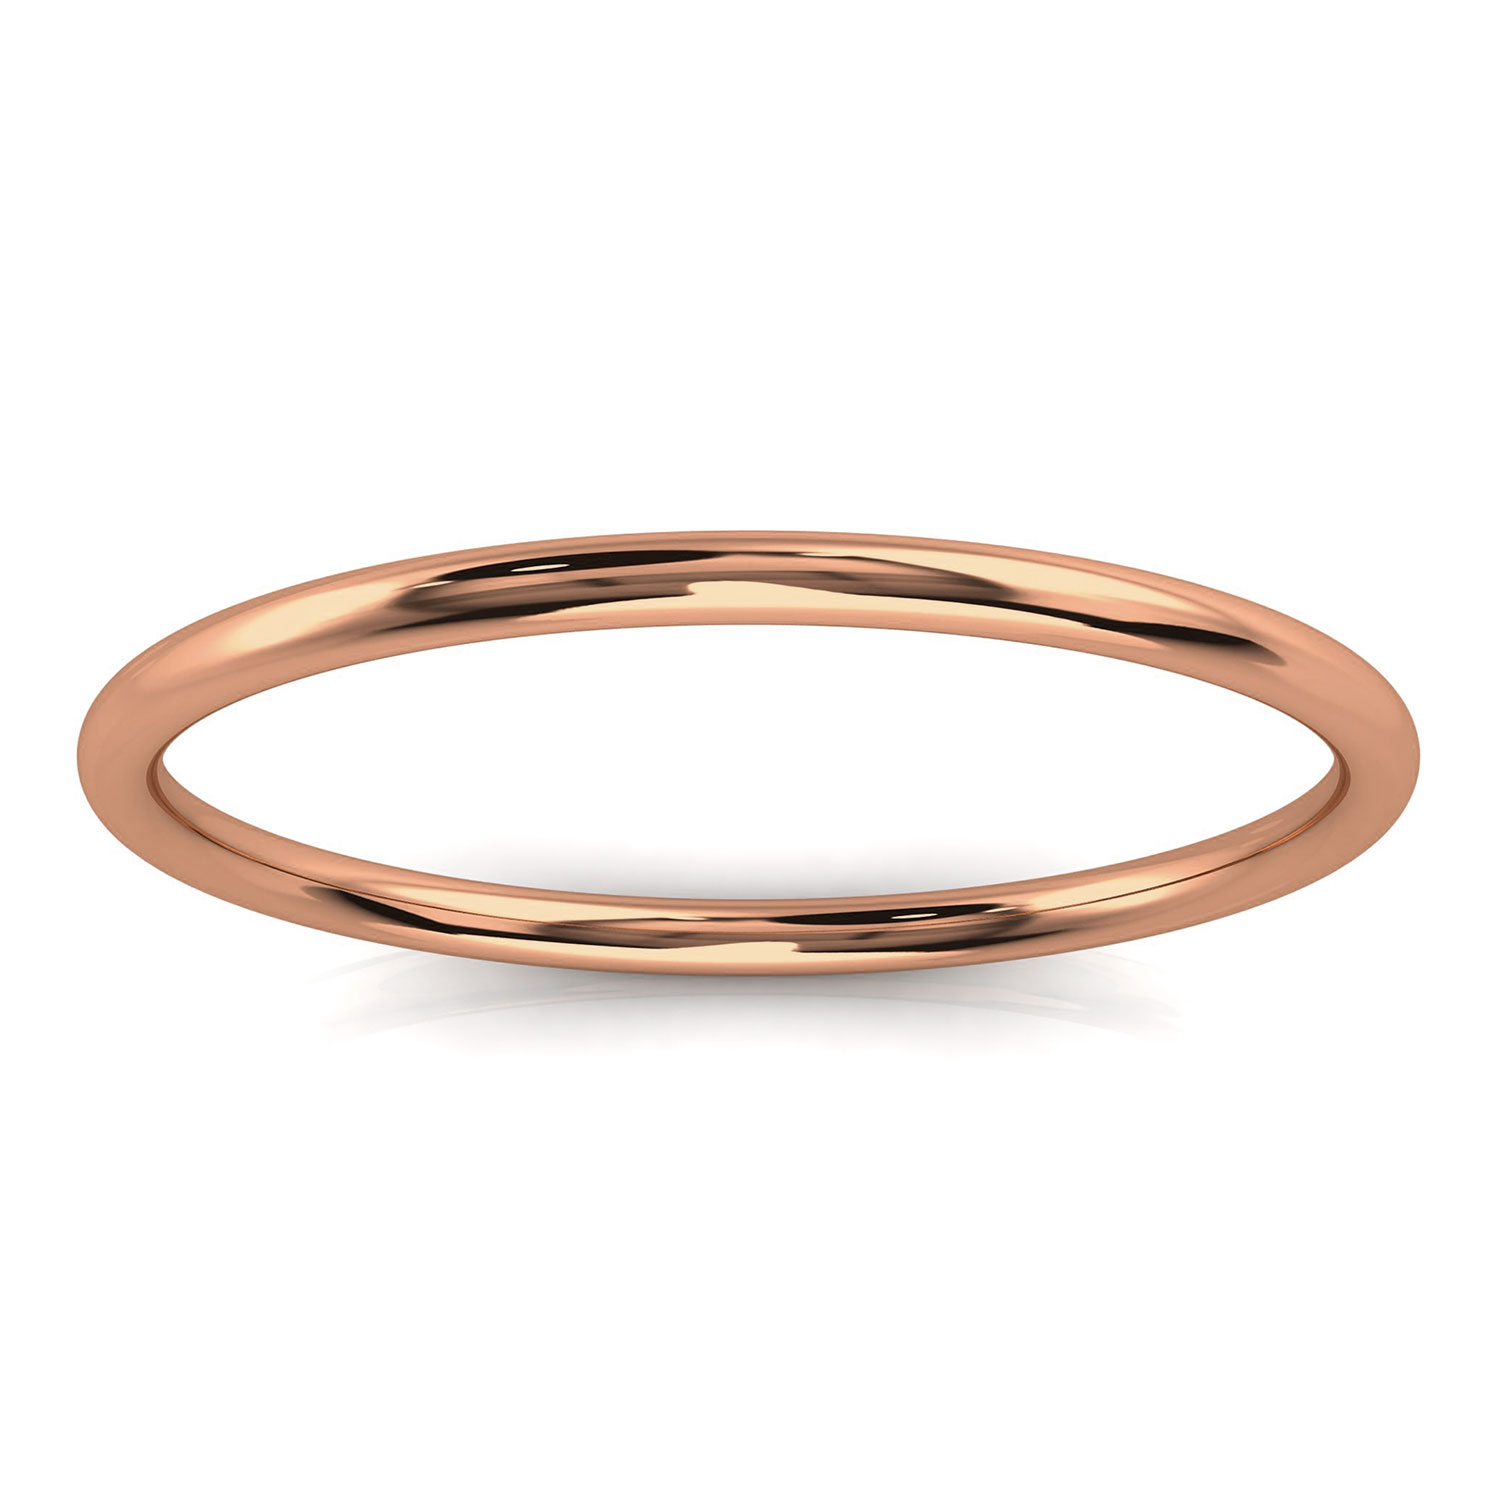 14K Rose Gold Minimalist Plain Nora Band 1.2 MM Wide